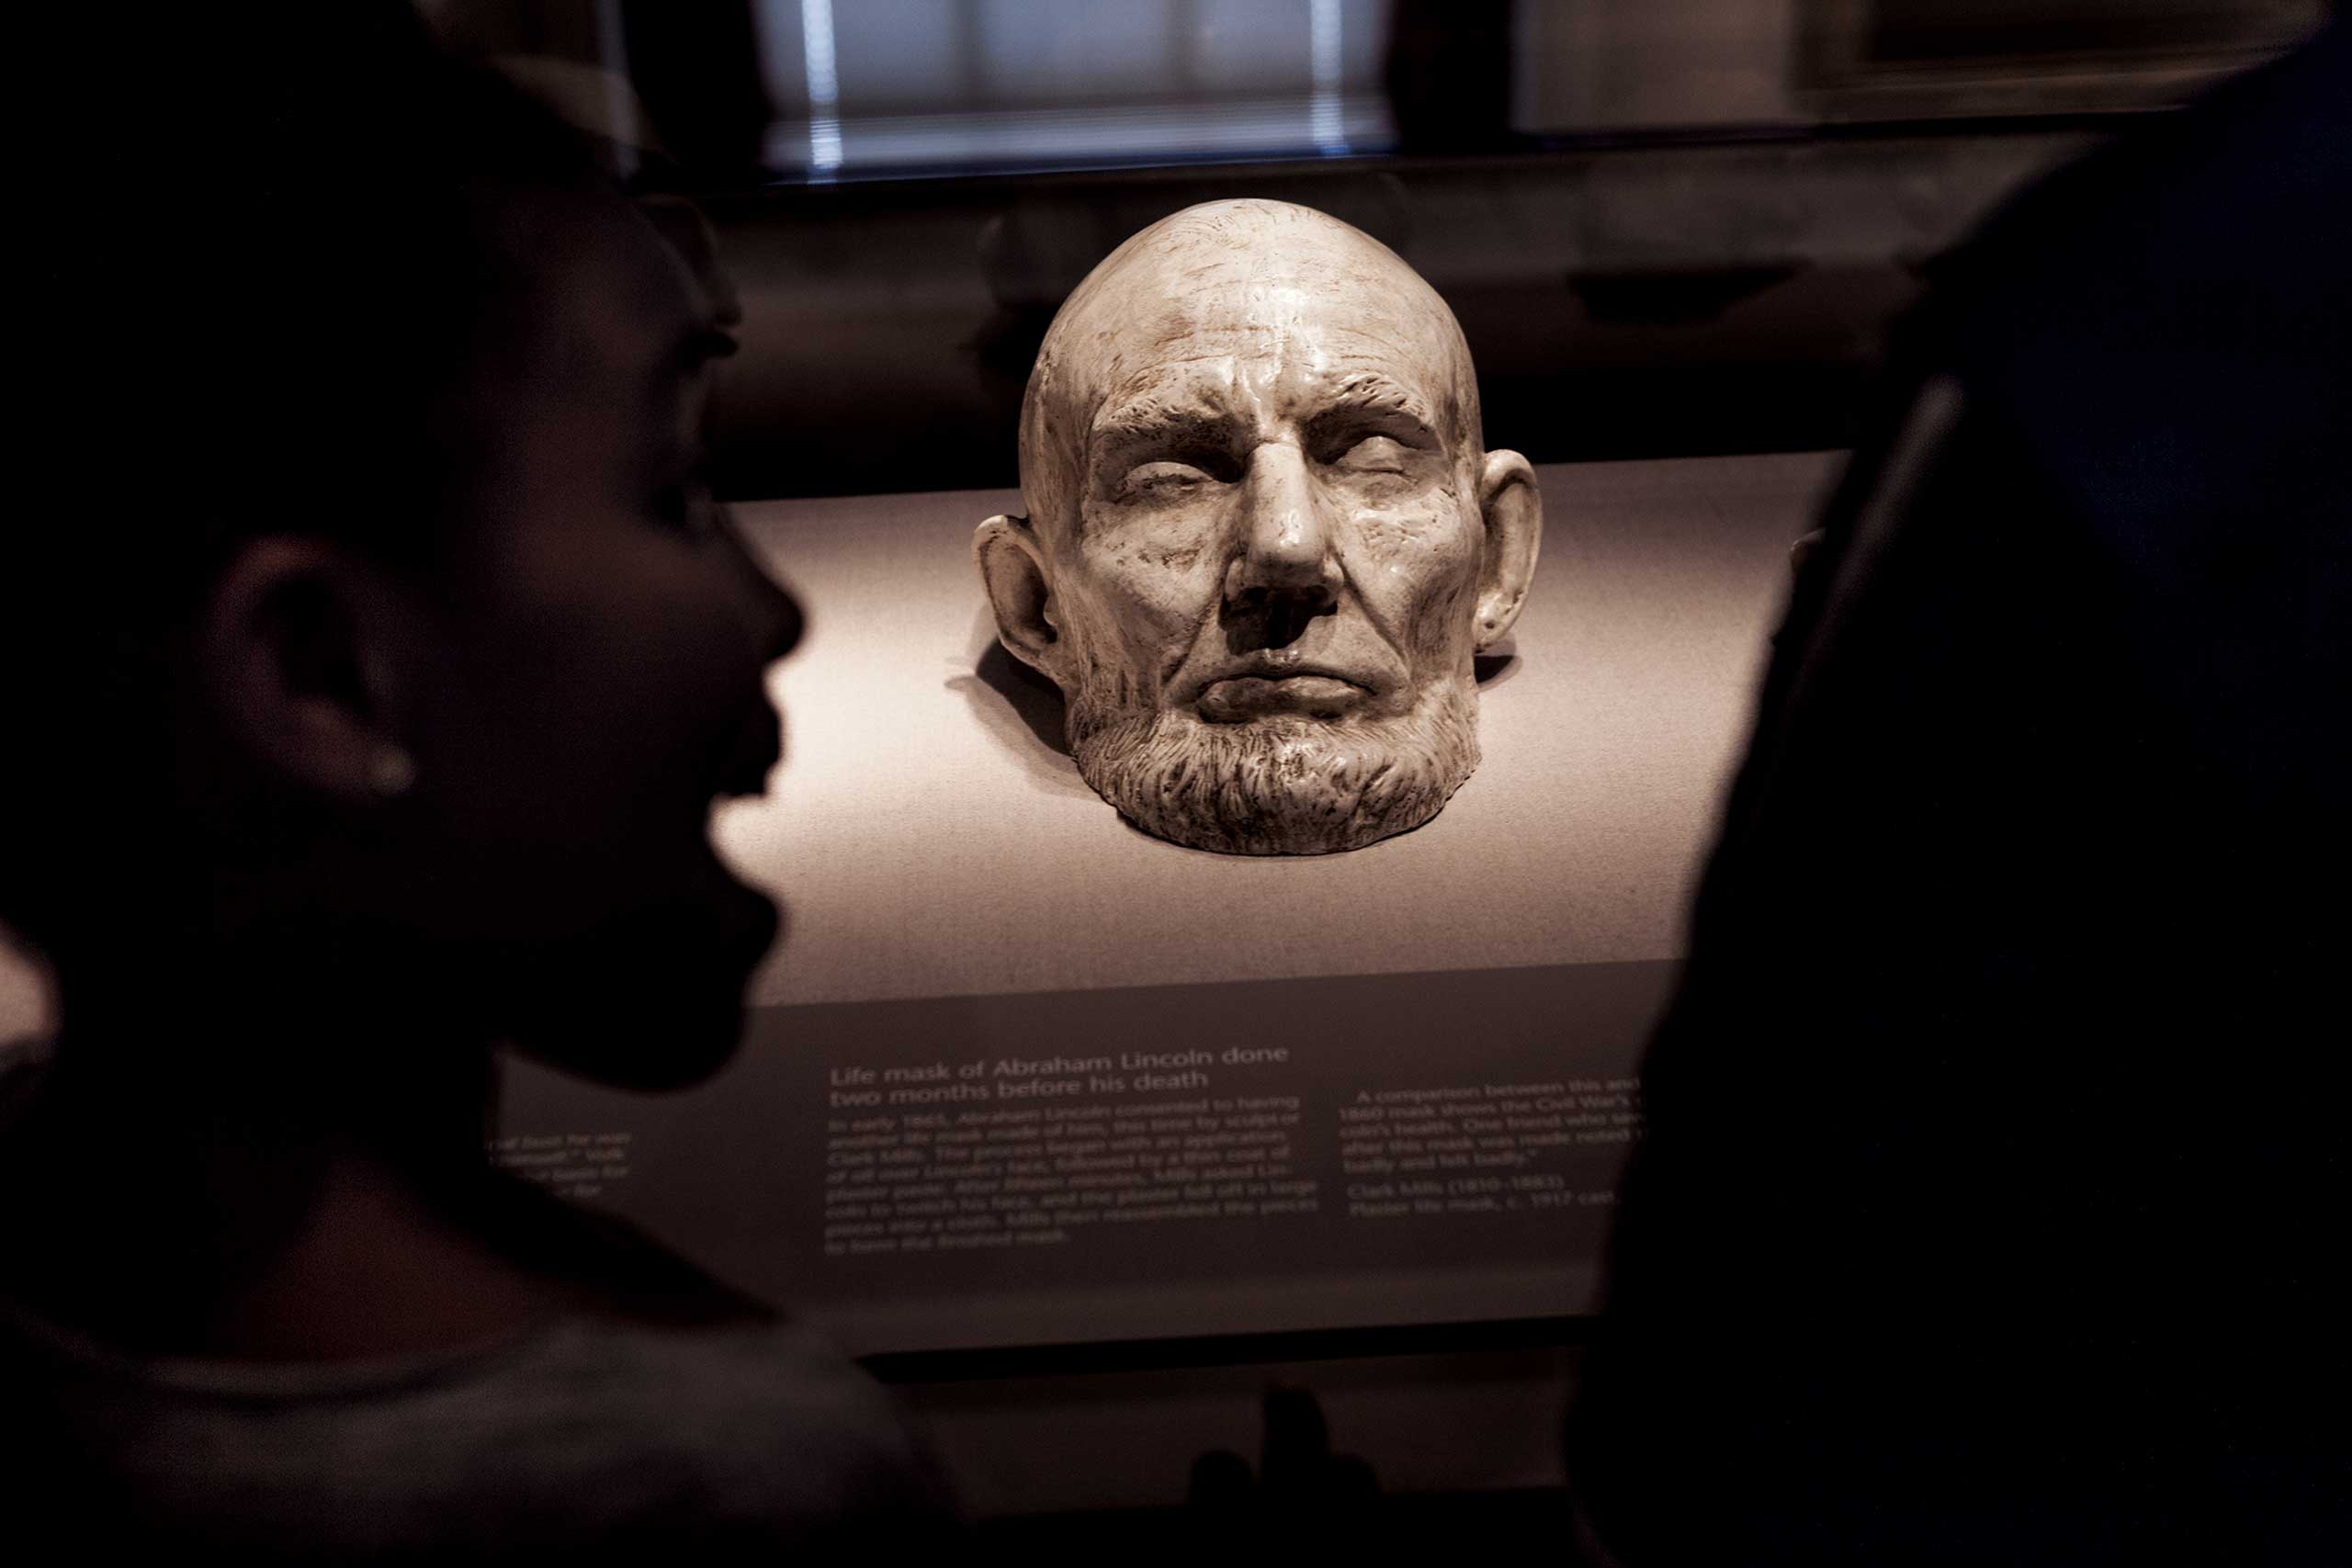 From the April issue of National Geographic magazine: Lincoln                                Children in Washington, D.C., view a plaster cast of a life mask of Lincoln's face, made nine weeks before his death in April 1865.